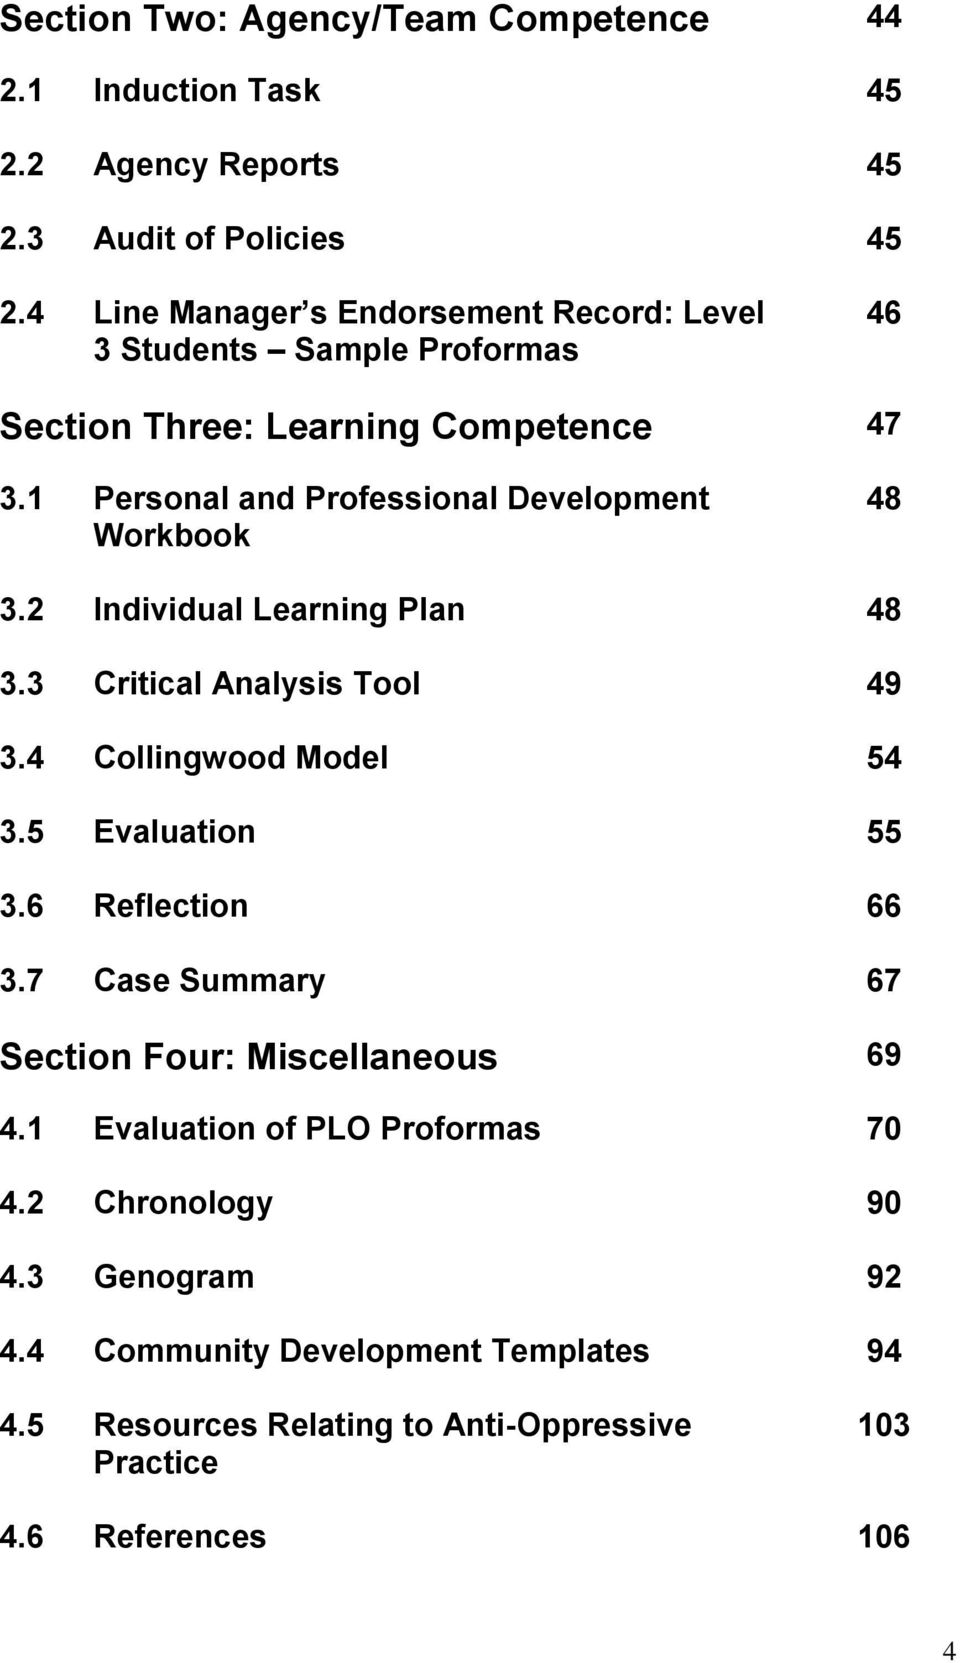 1 Personal and Professional Development Workbook 48 3.2 Individual Learning Plan 48 3.3 Critical Analysis Tool 49 3.4 Collingwood Model 54 3.5 Evaluation 55 3.